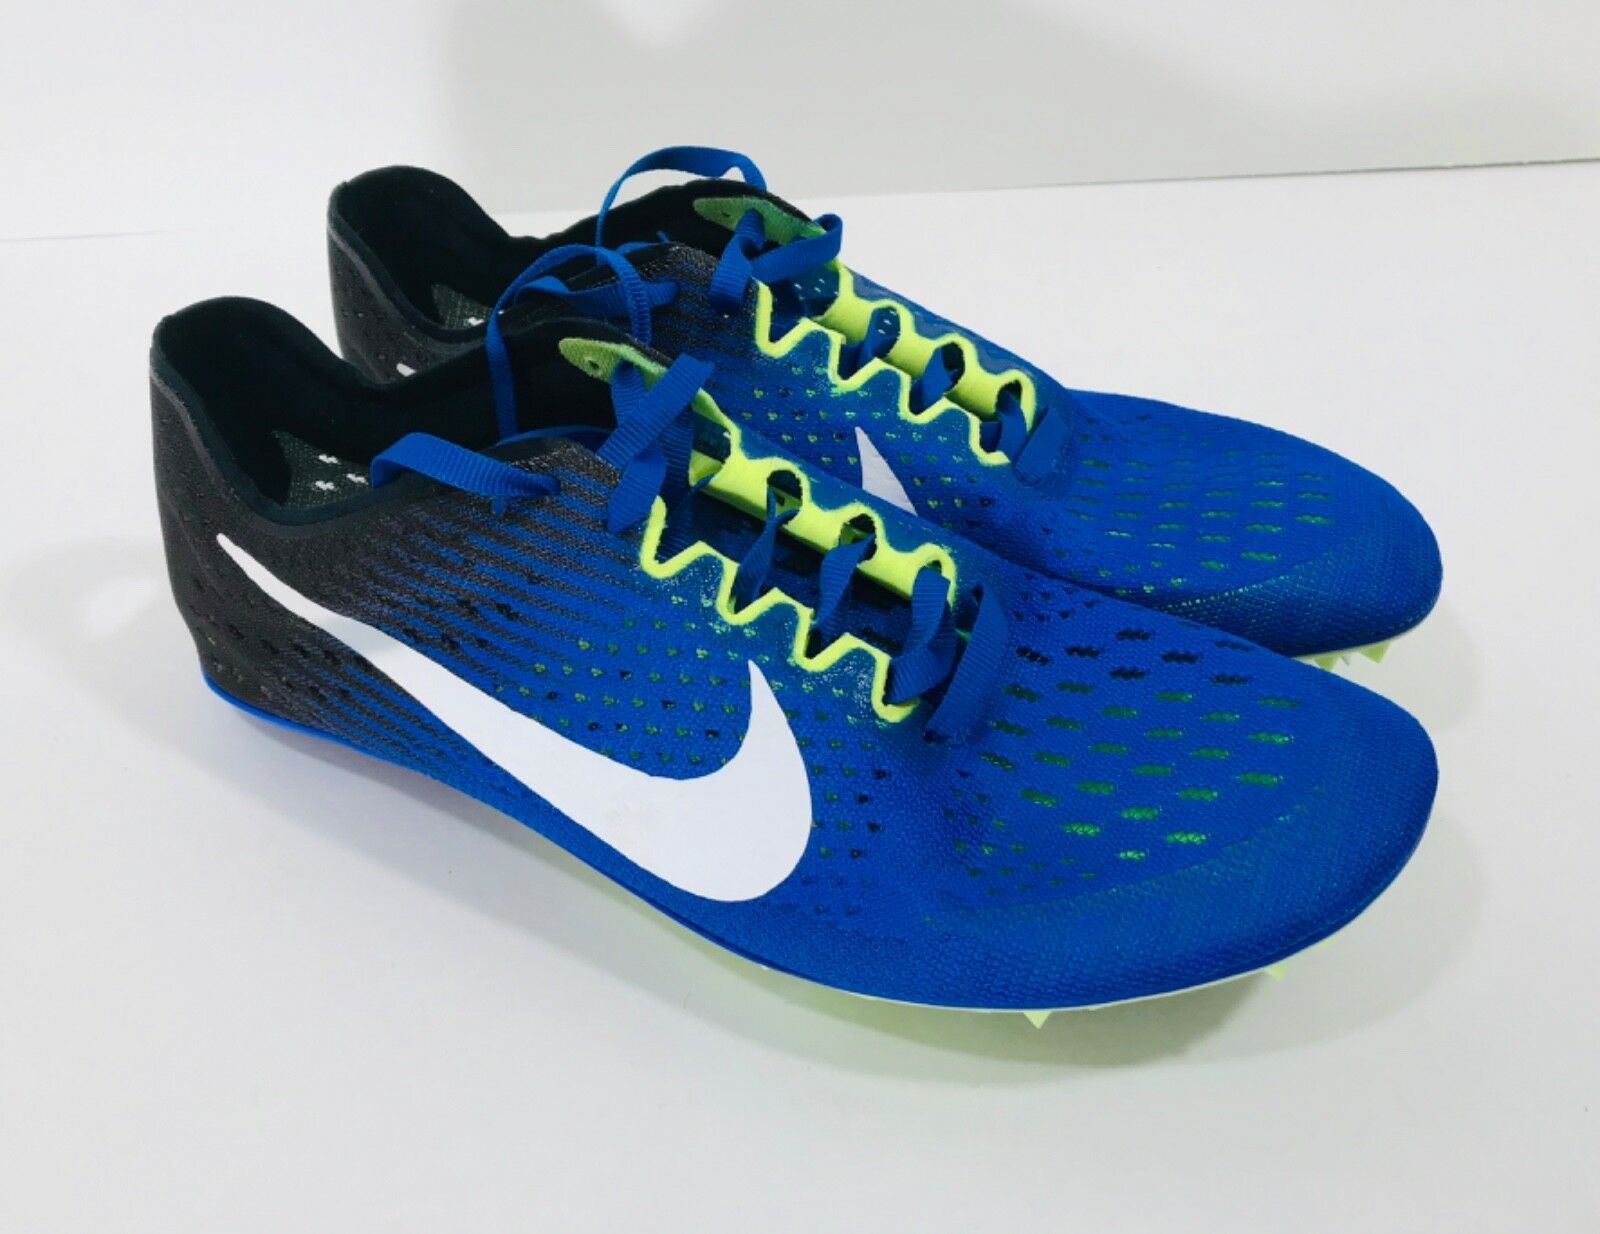 New Nike Zoom Victory Elite 2 Men's Size 5.5 & 6 Track Spikes 835998-413 bluee